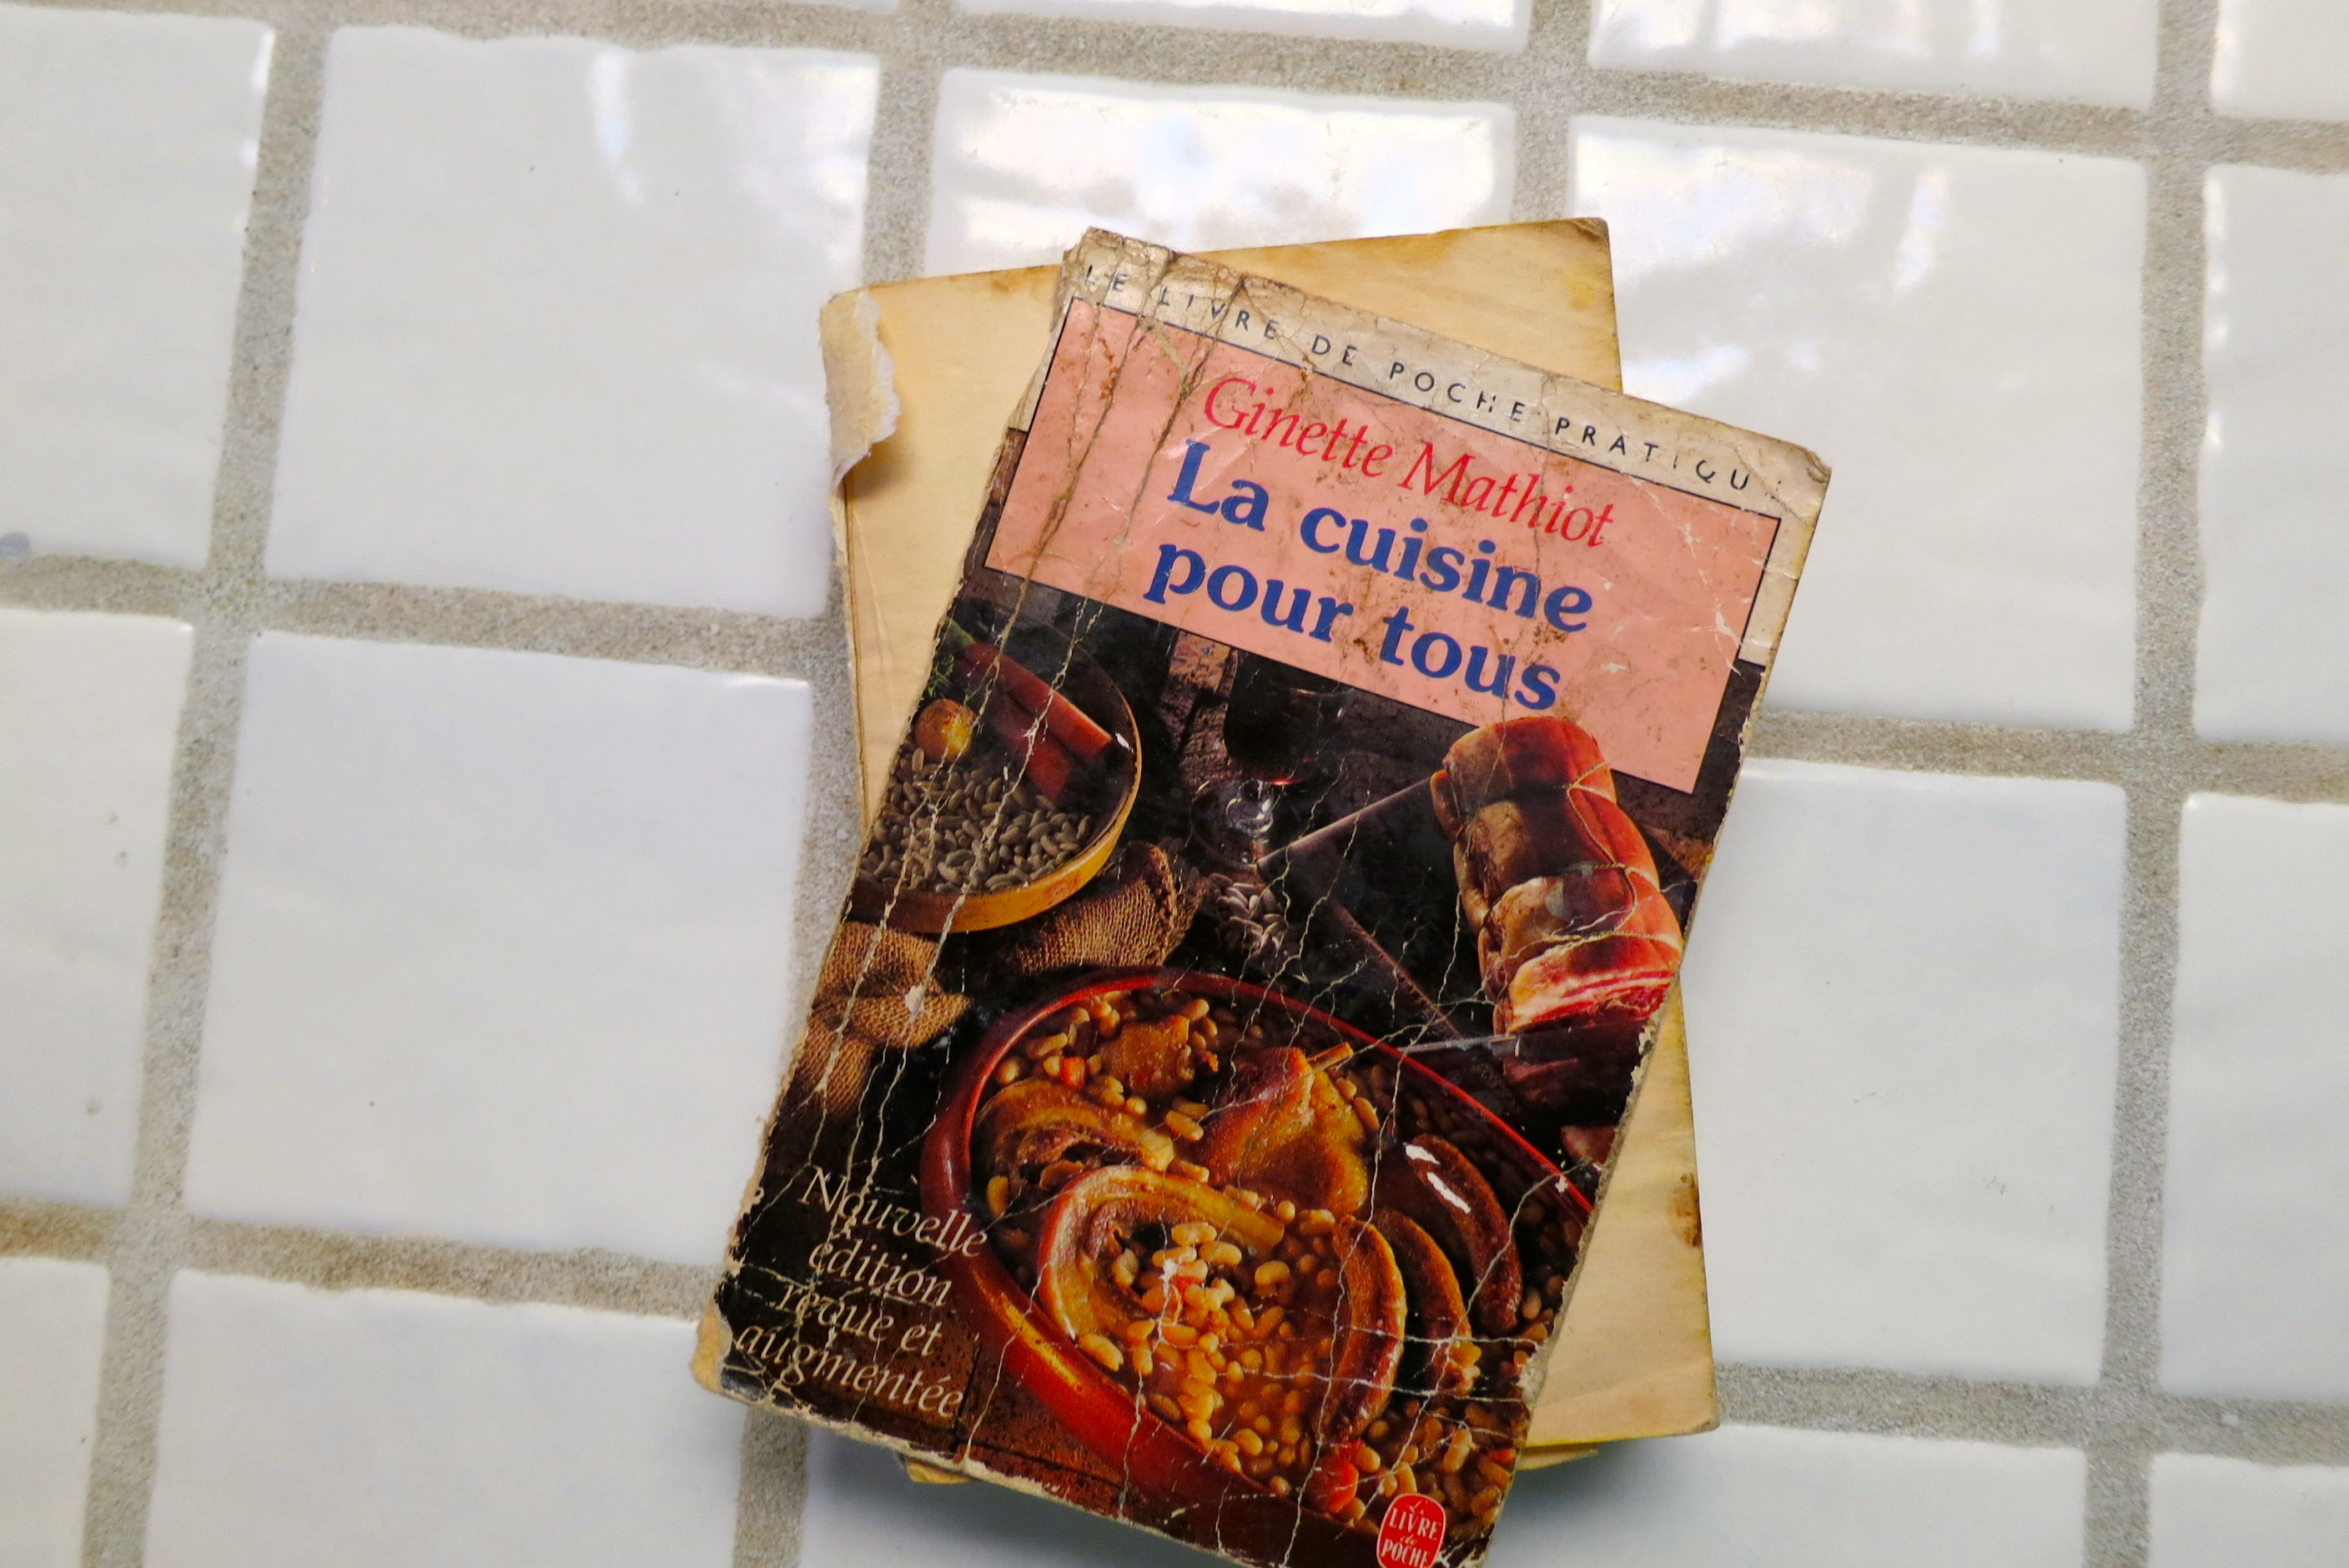 French and parfait ginette mathiot la cuisine pour tous - La cuisine pour tous ginette mathiot ...